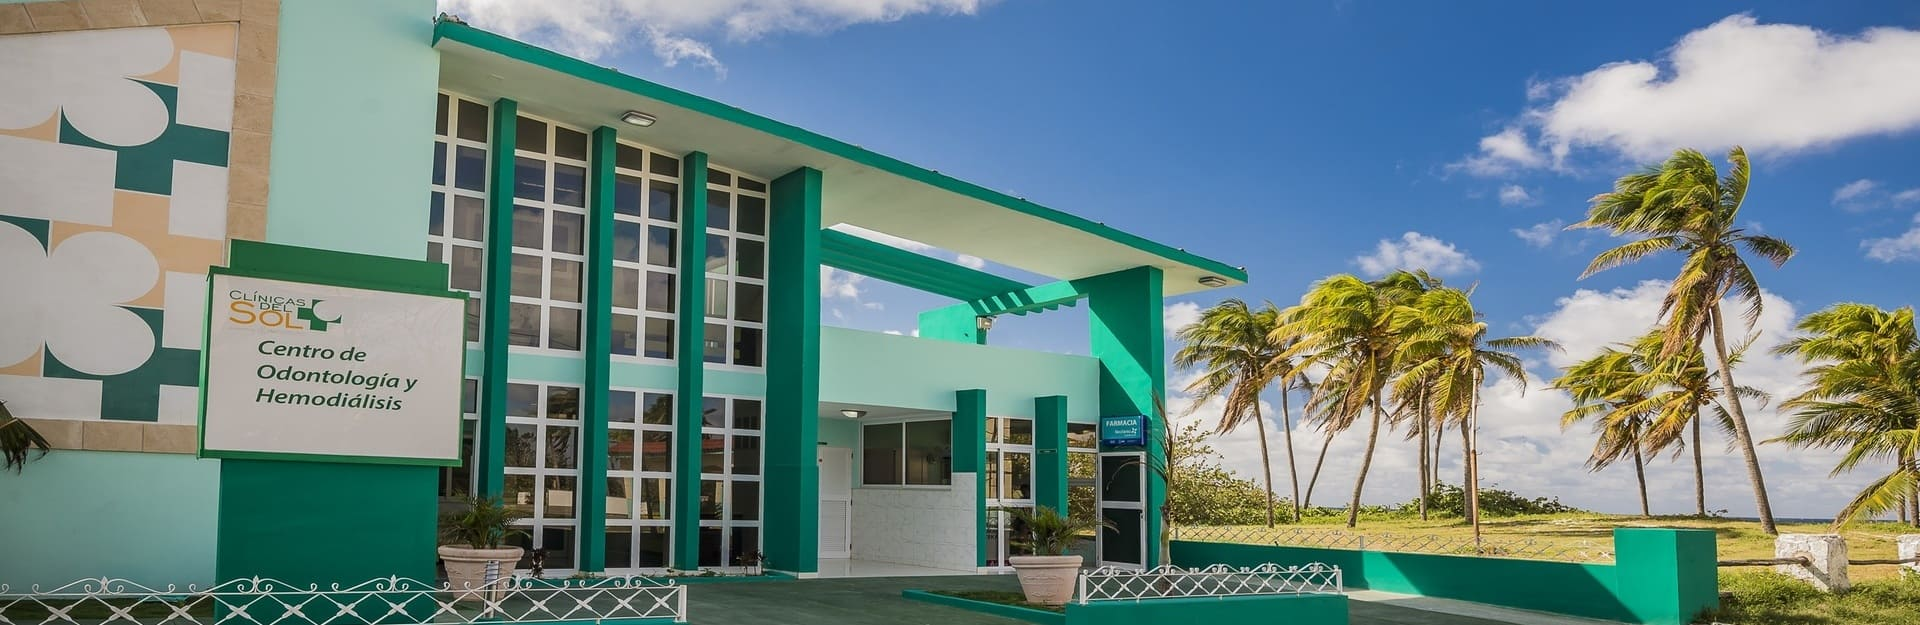 Dentistry and Hemodialysis Clinic, SMC, Varadero, Cuba